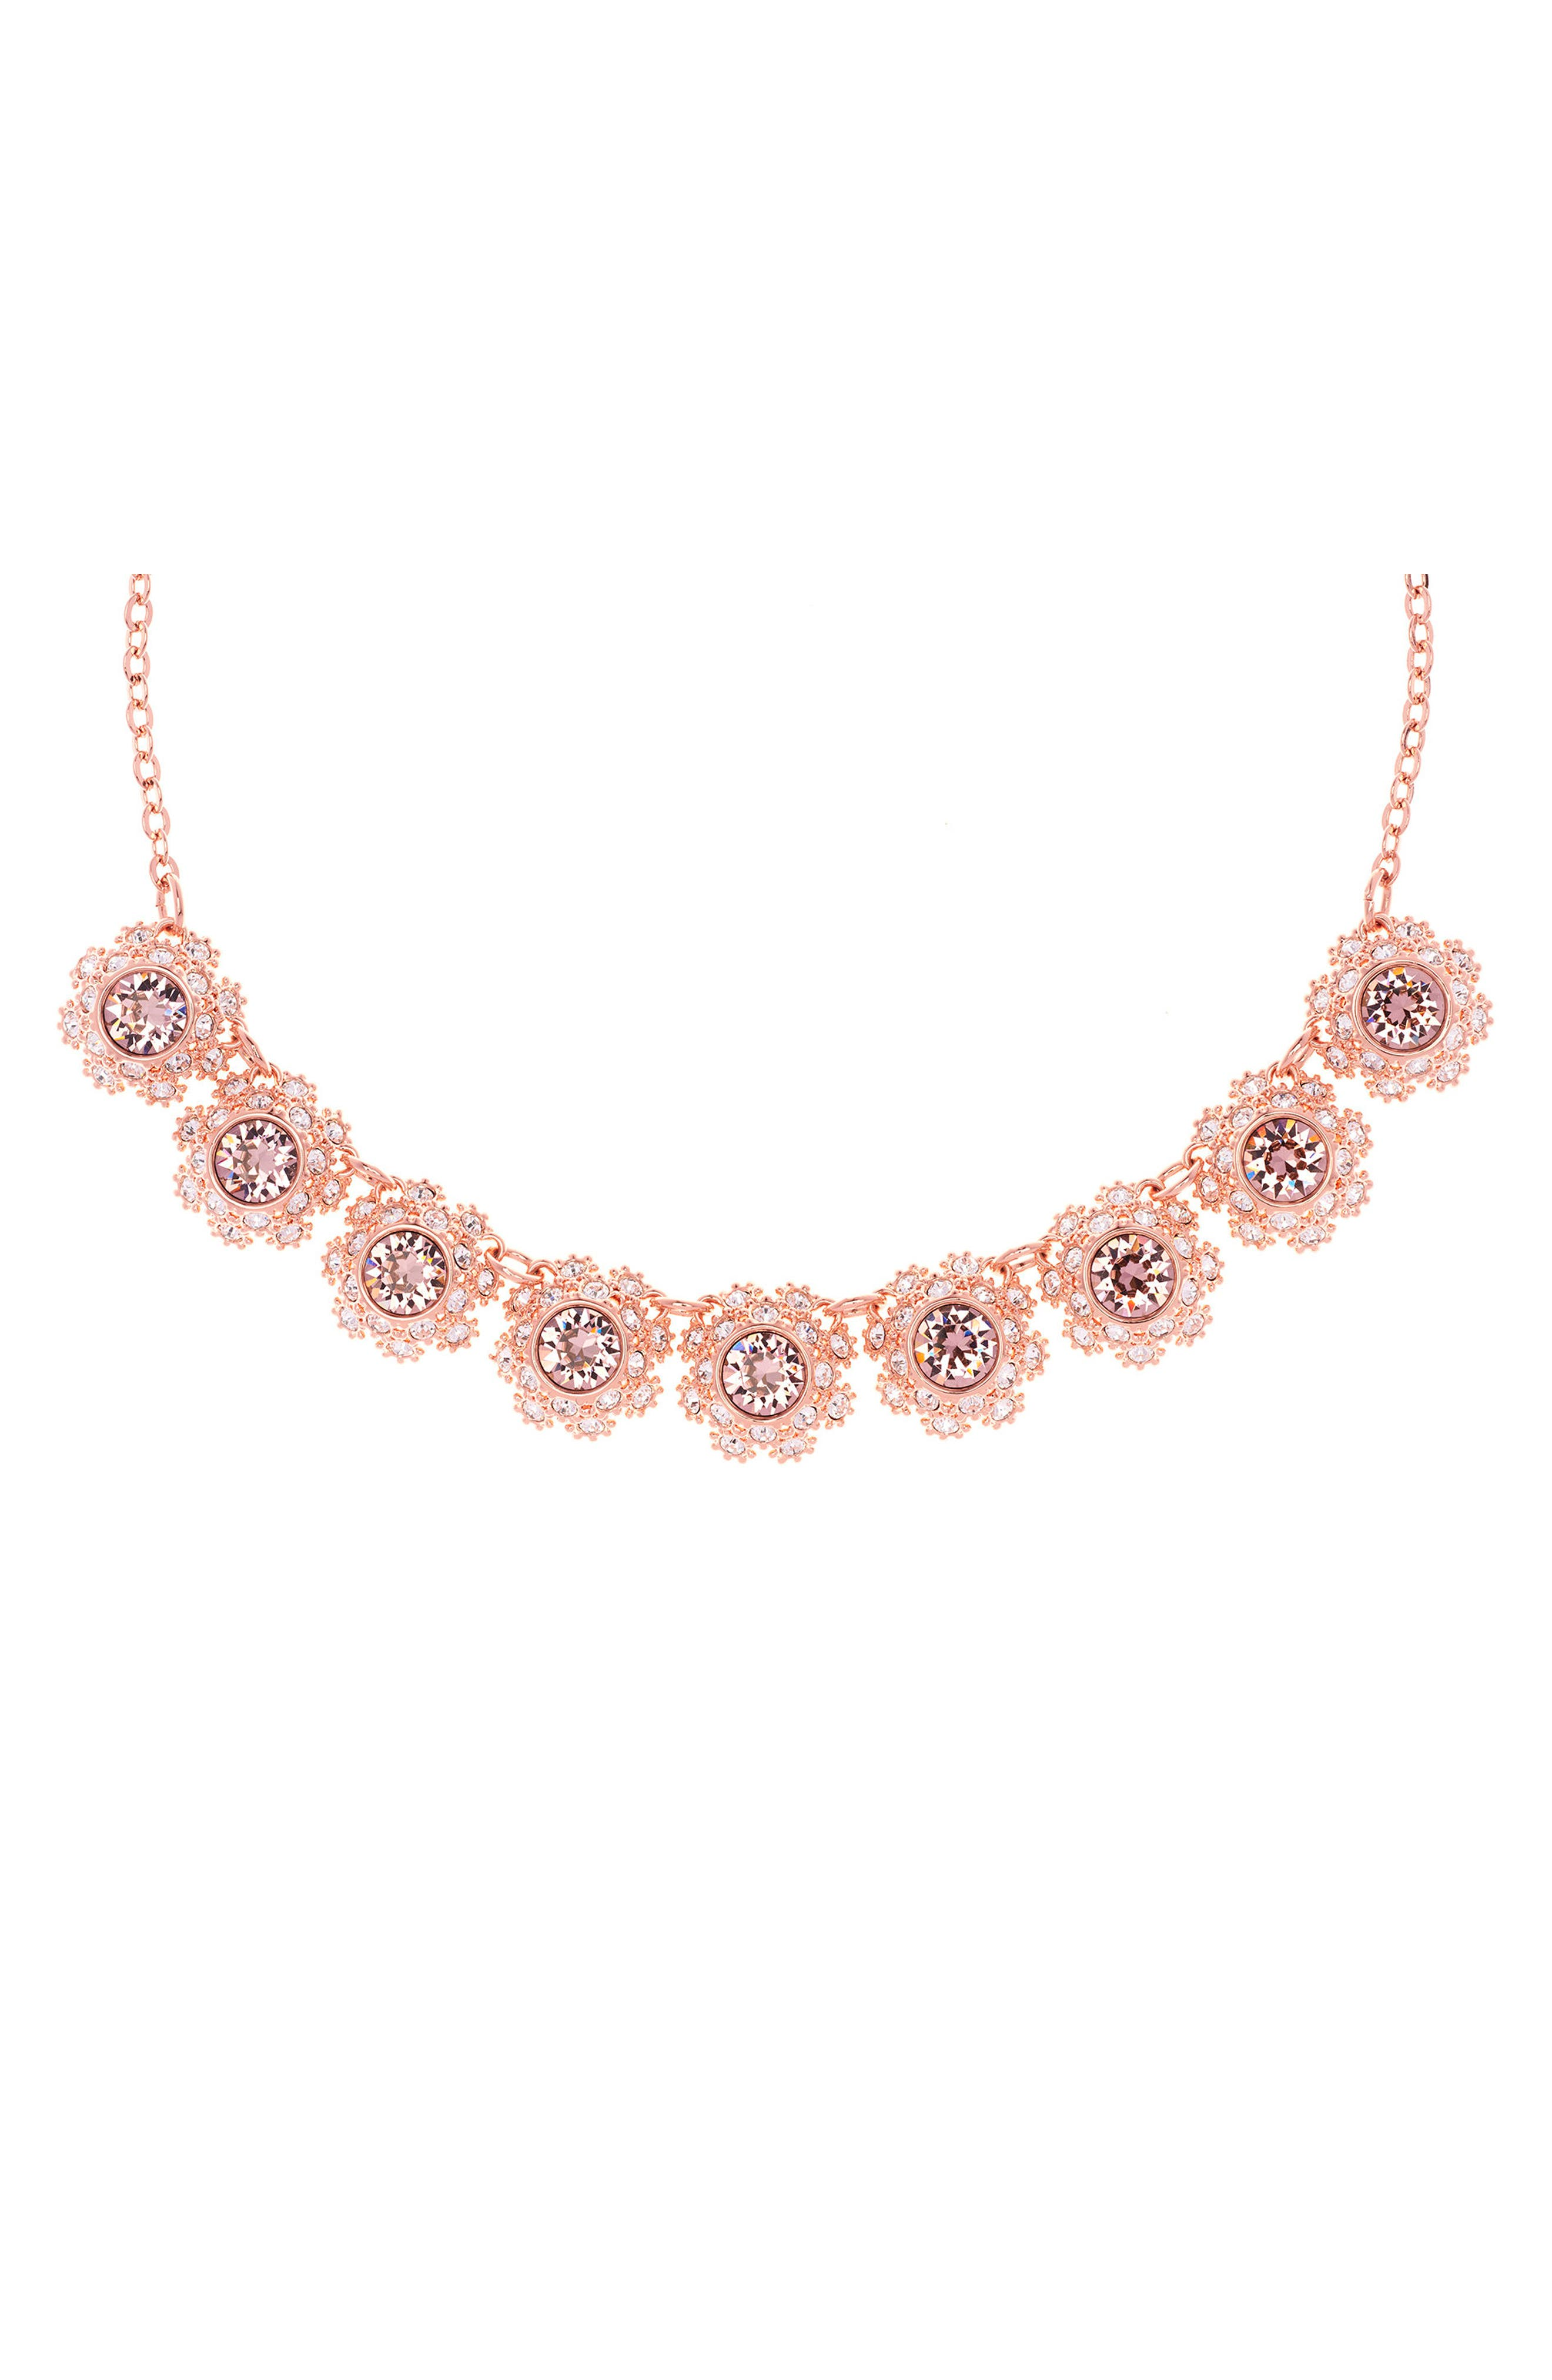 Crystal Daisy Lace Collar Necklace,                             Alternate thumbnail 2, color,                             660